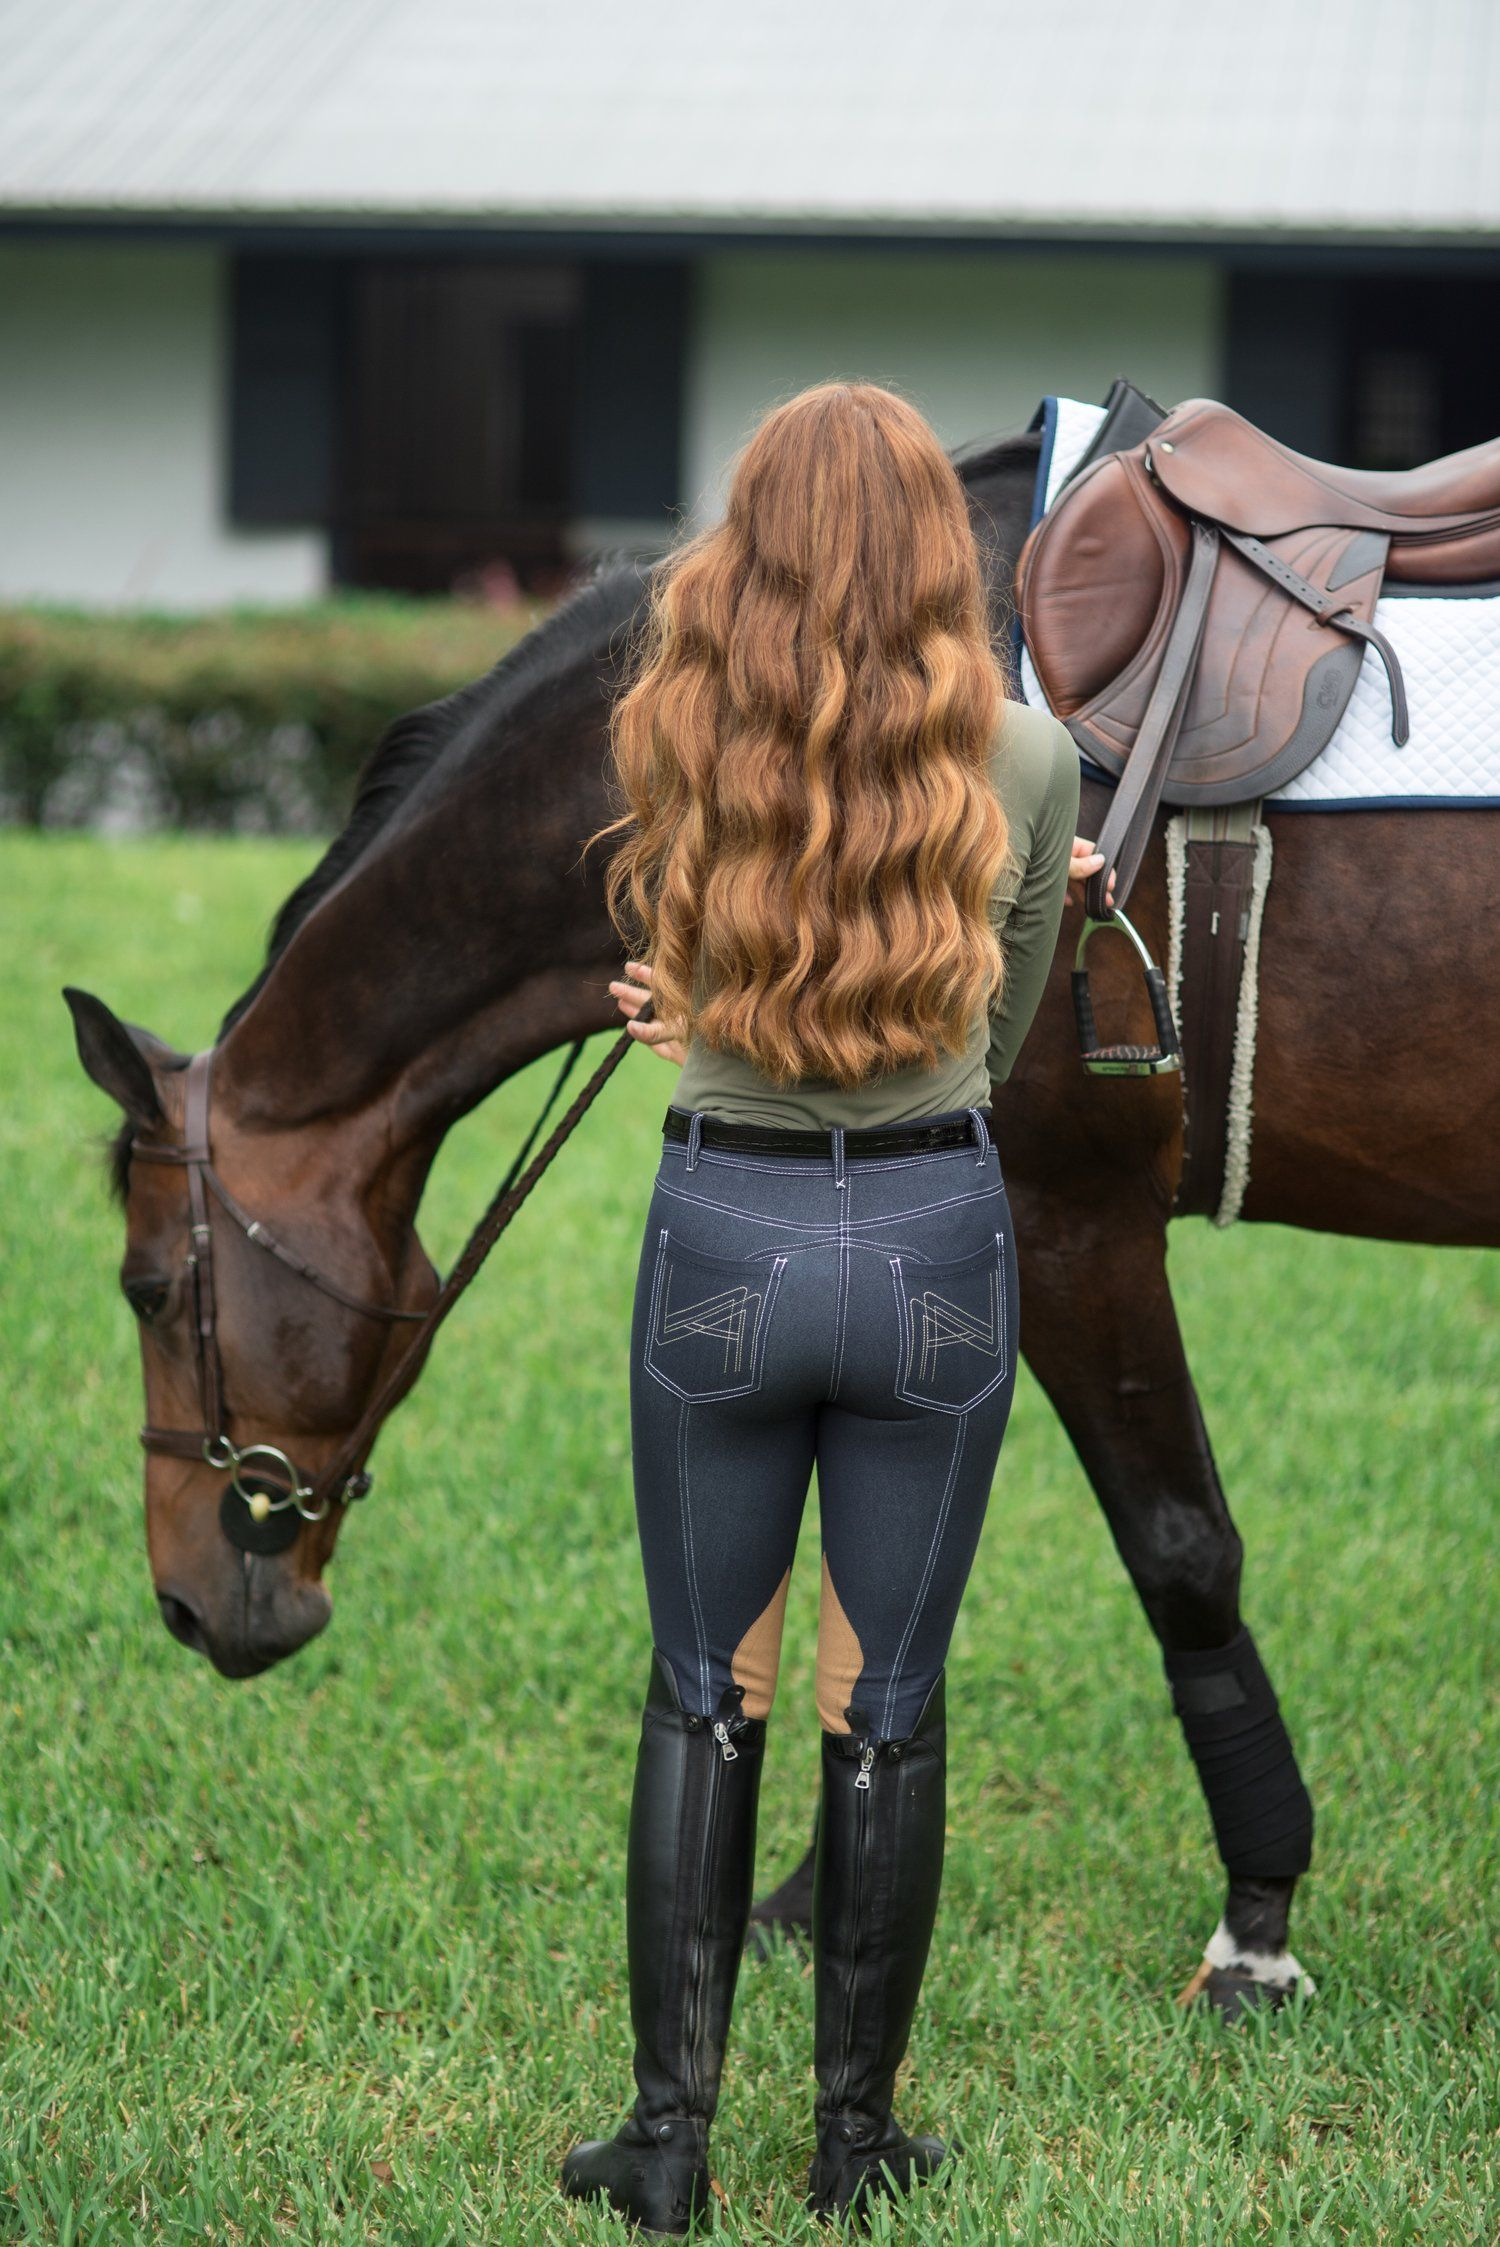 😋😊😊😊😊😍 | Equestrian style, Equestrian outfits, Horse